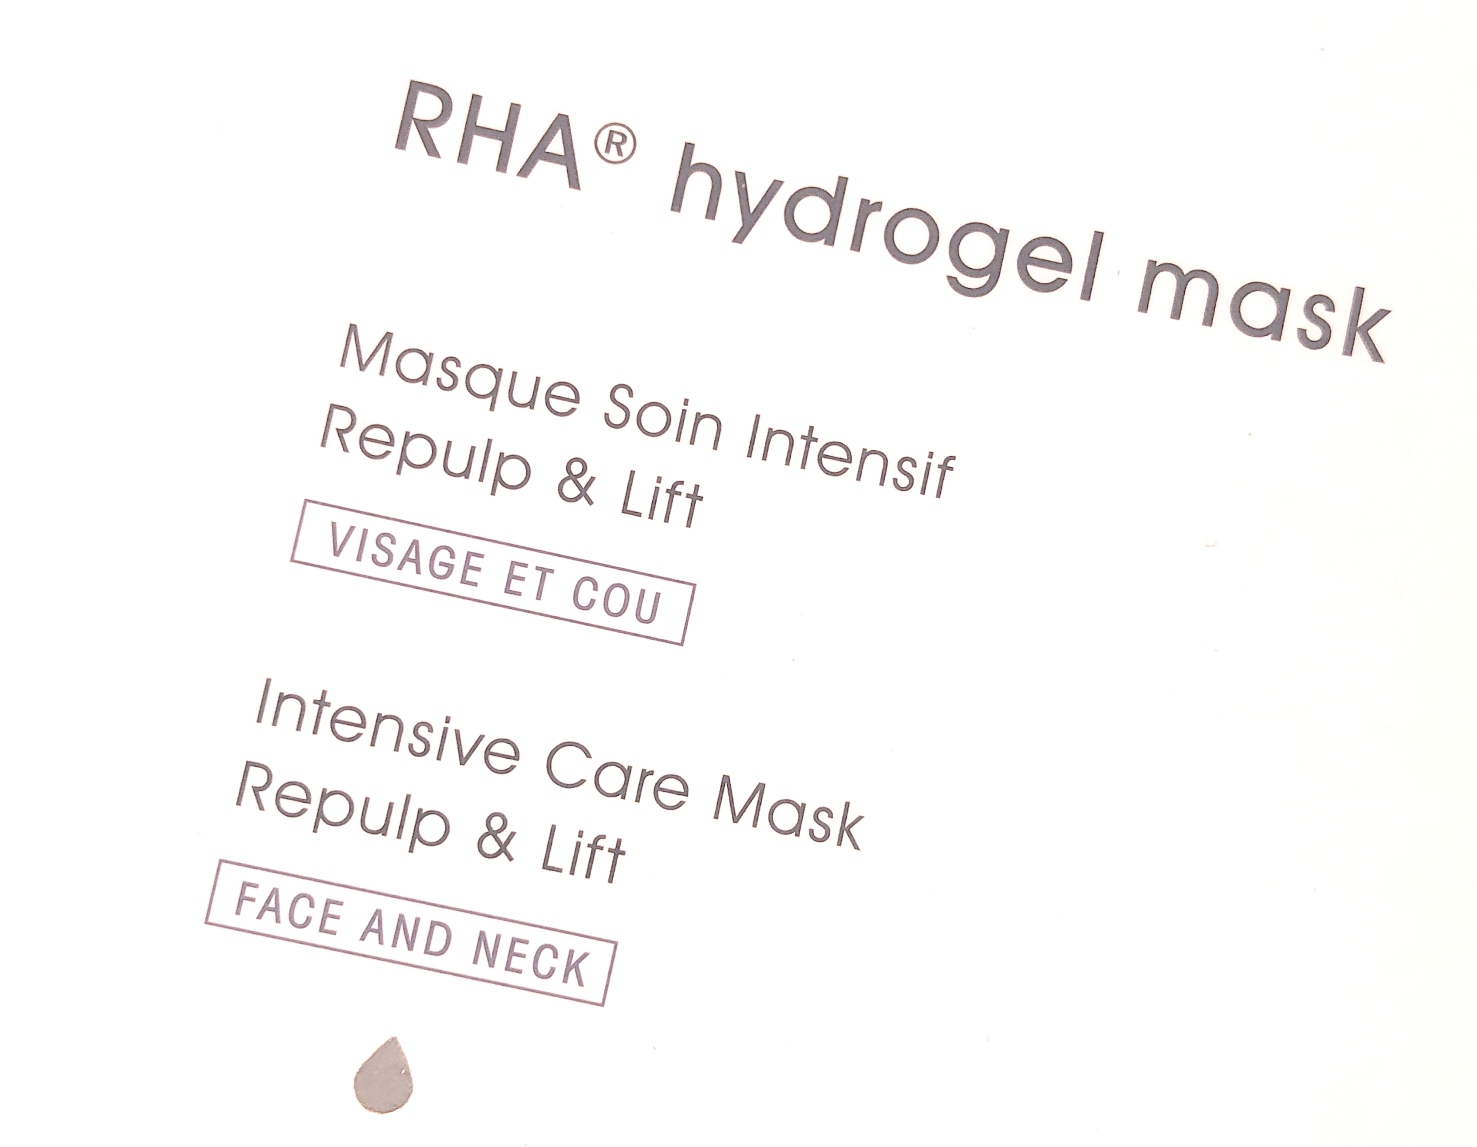 TEOXANE HYDROGEL MASK